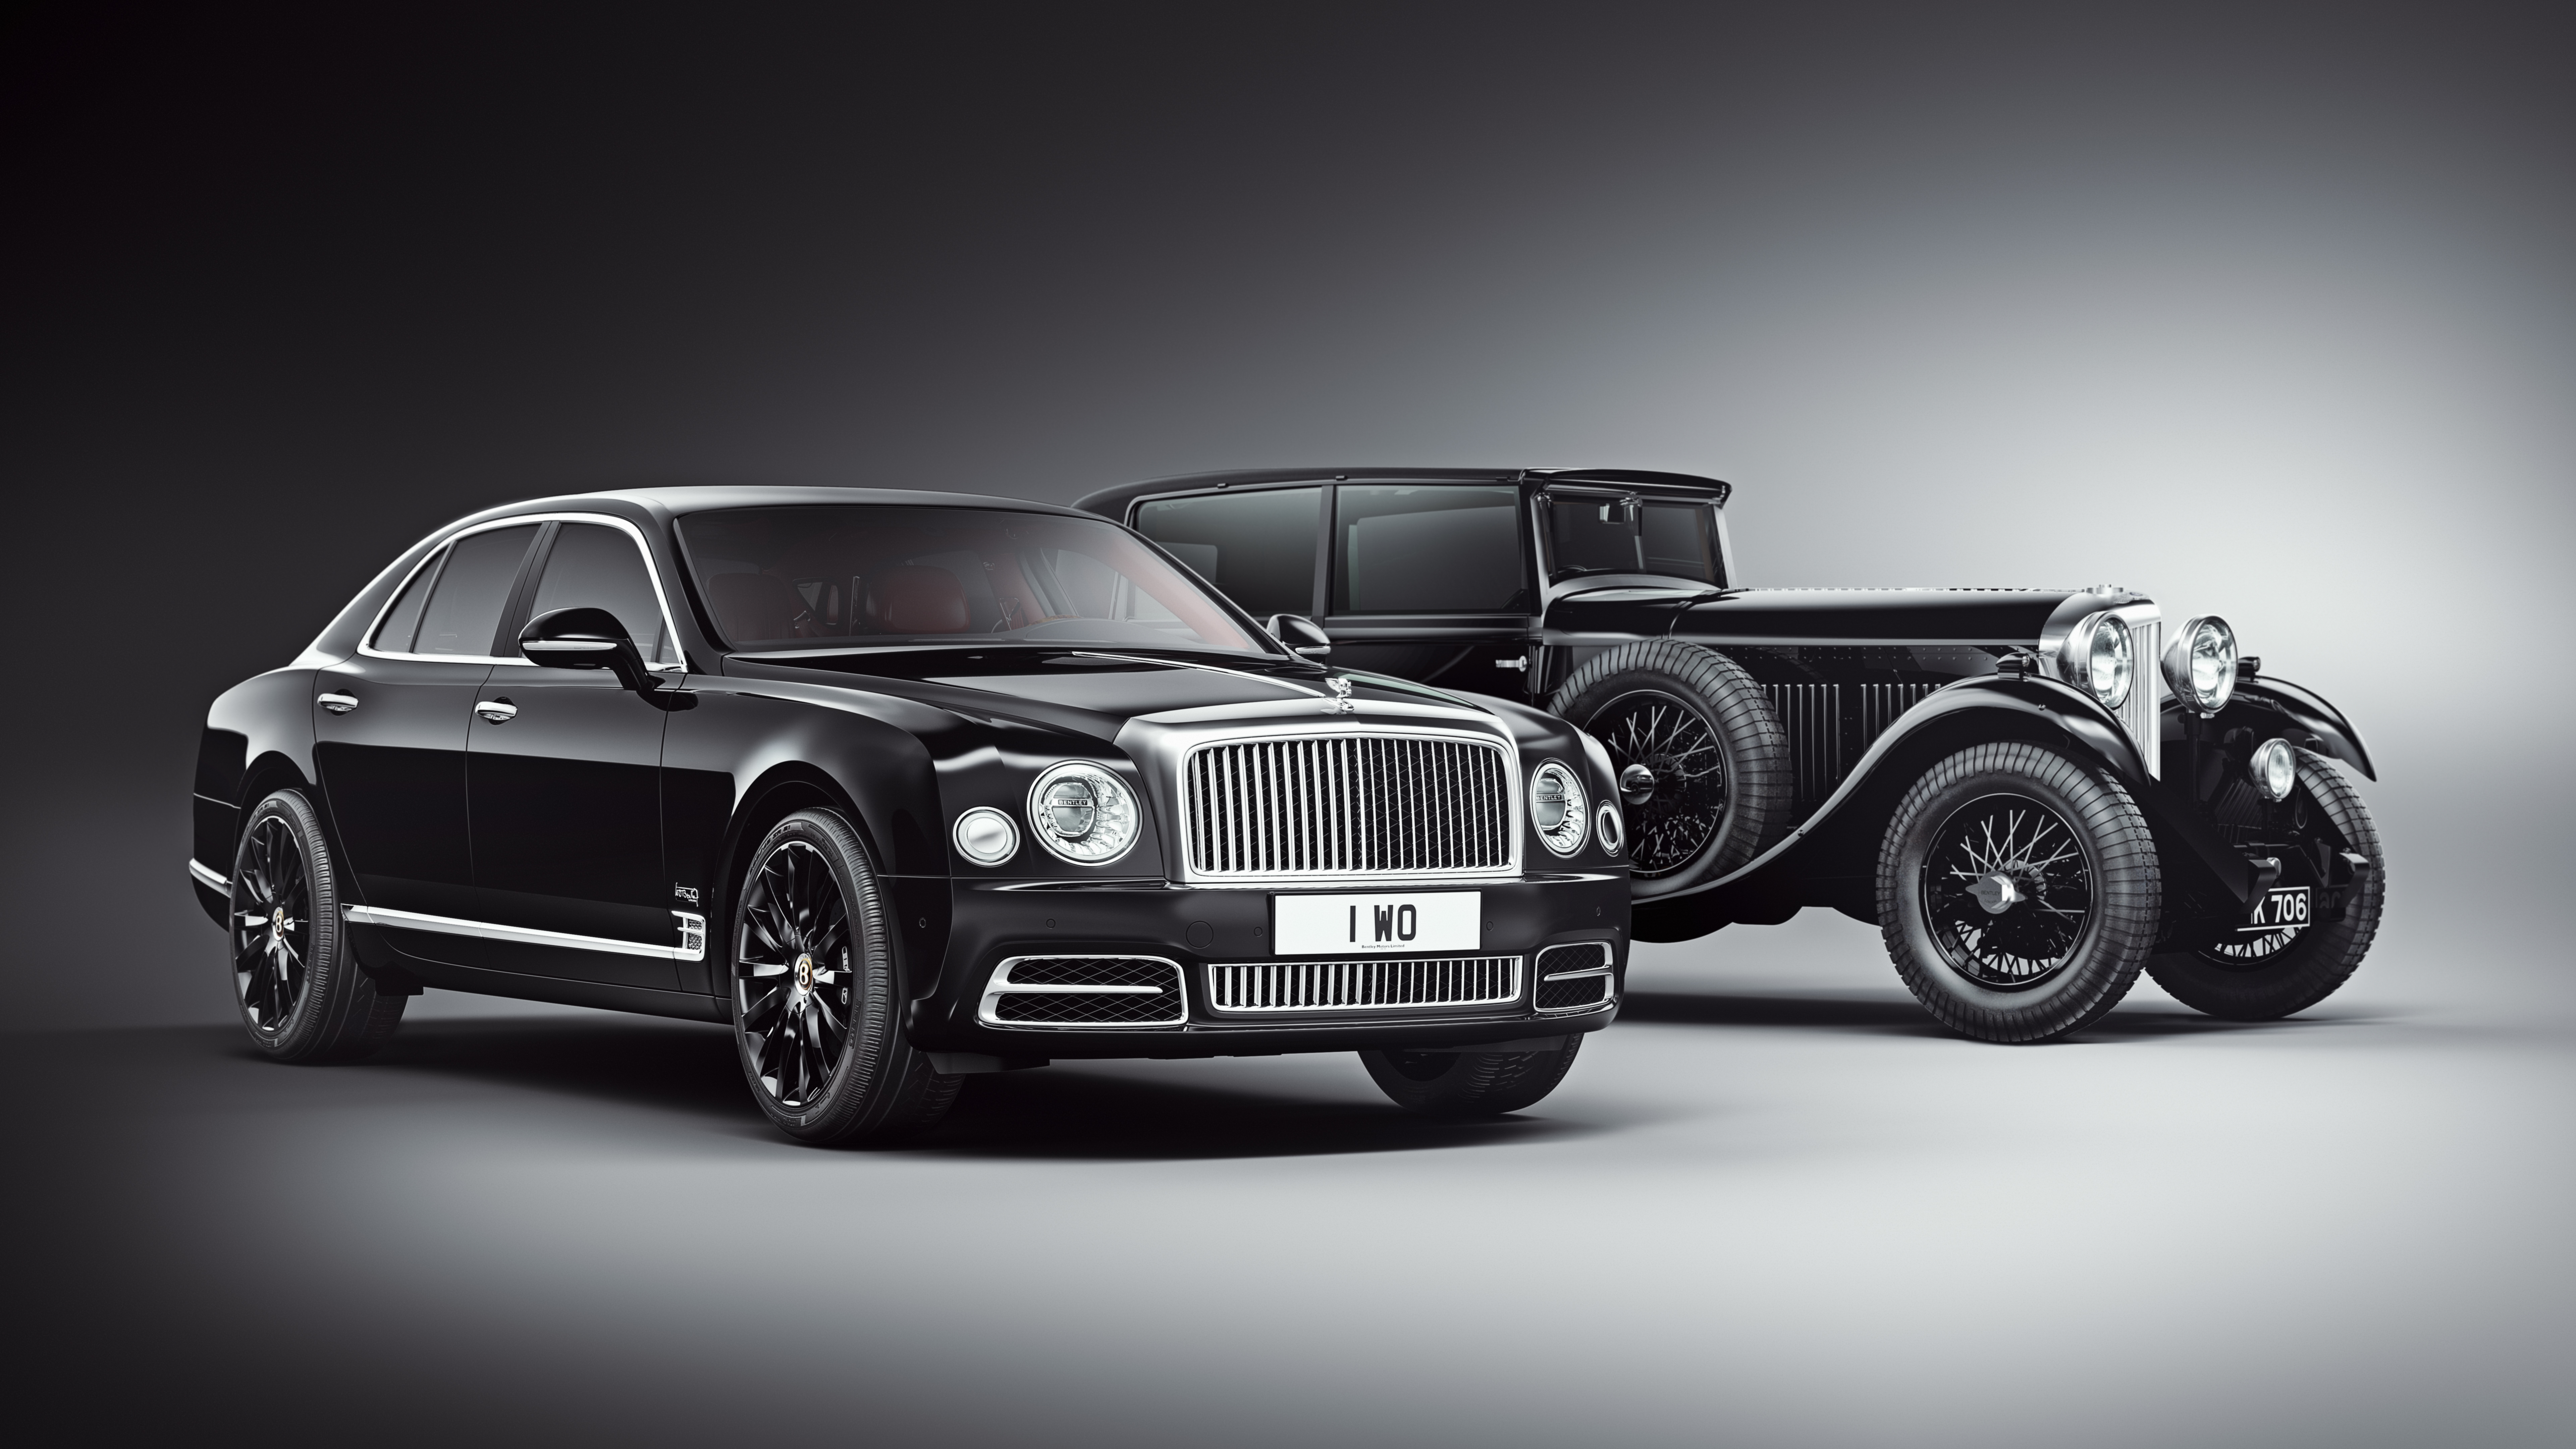 1 - Mulsanne WO Edition and 8-Litre